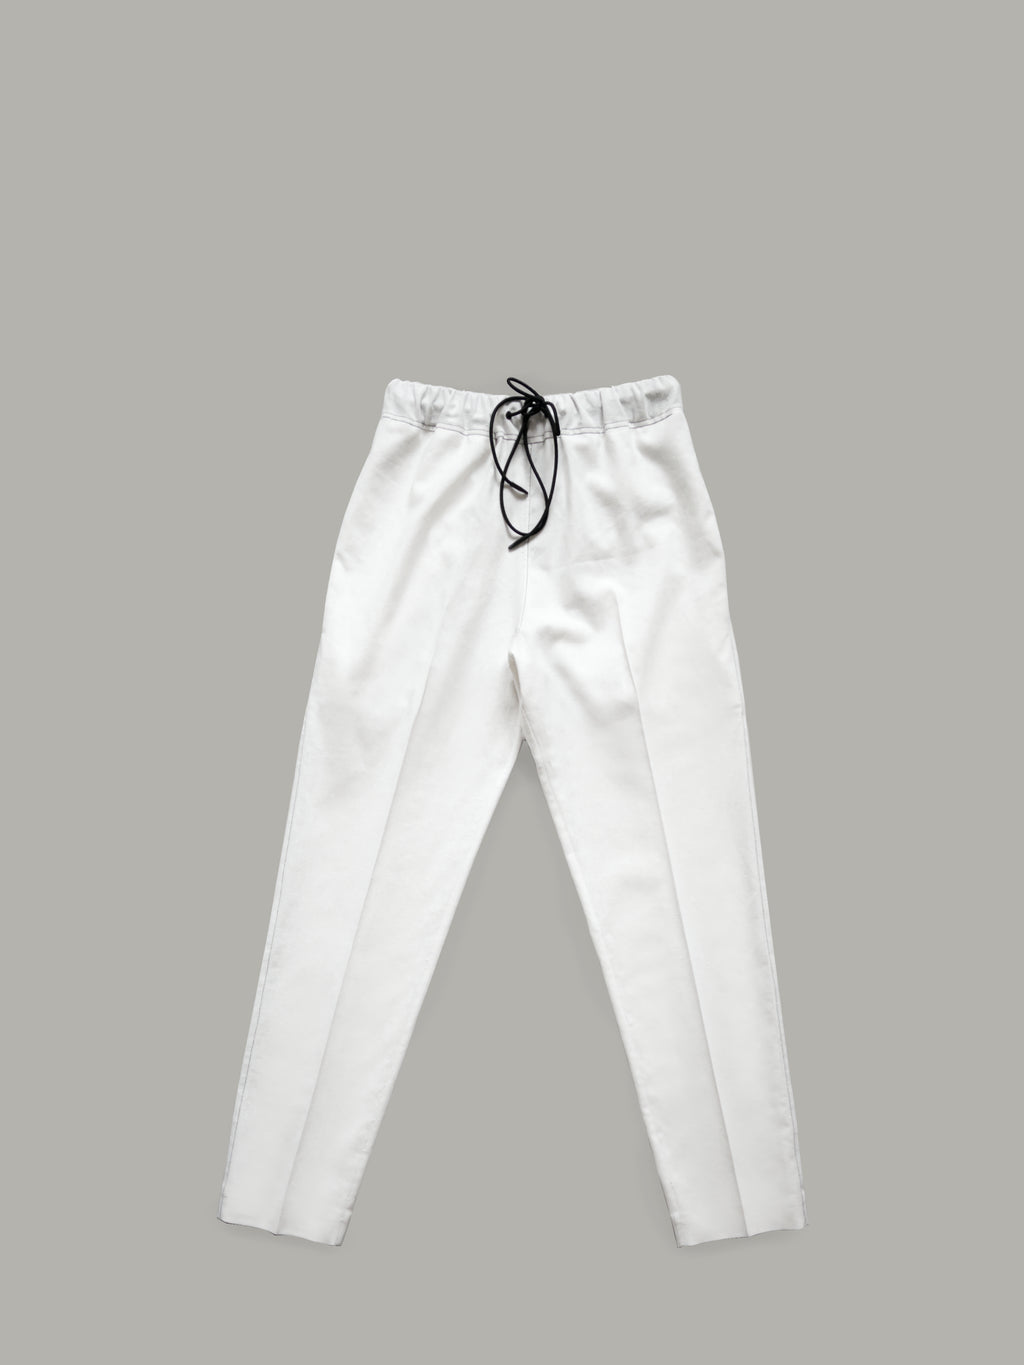 OFF-WHITE PURE LINEN TROUSERS WITH CONTRAST TOPSTITCHING DETAILS